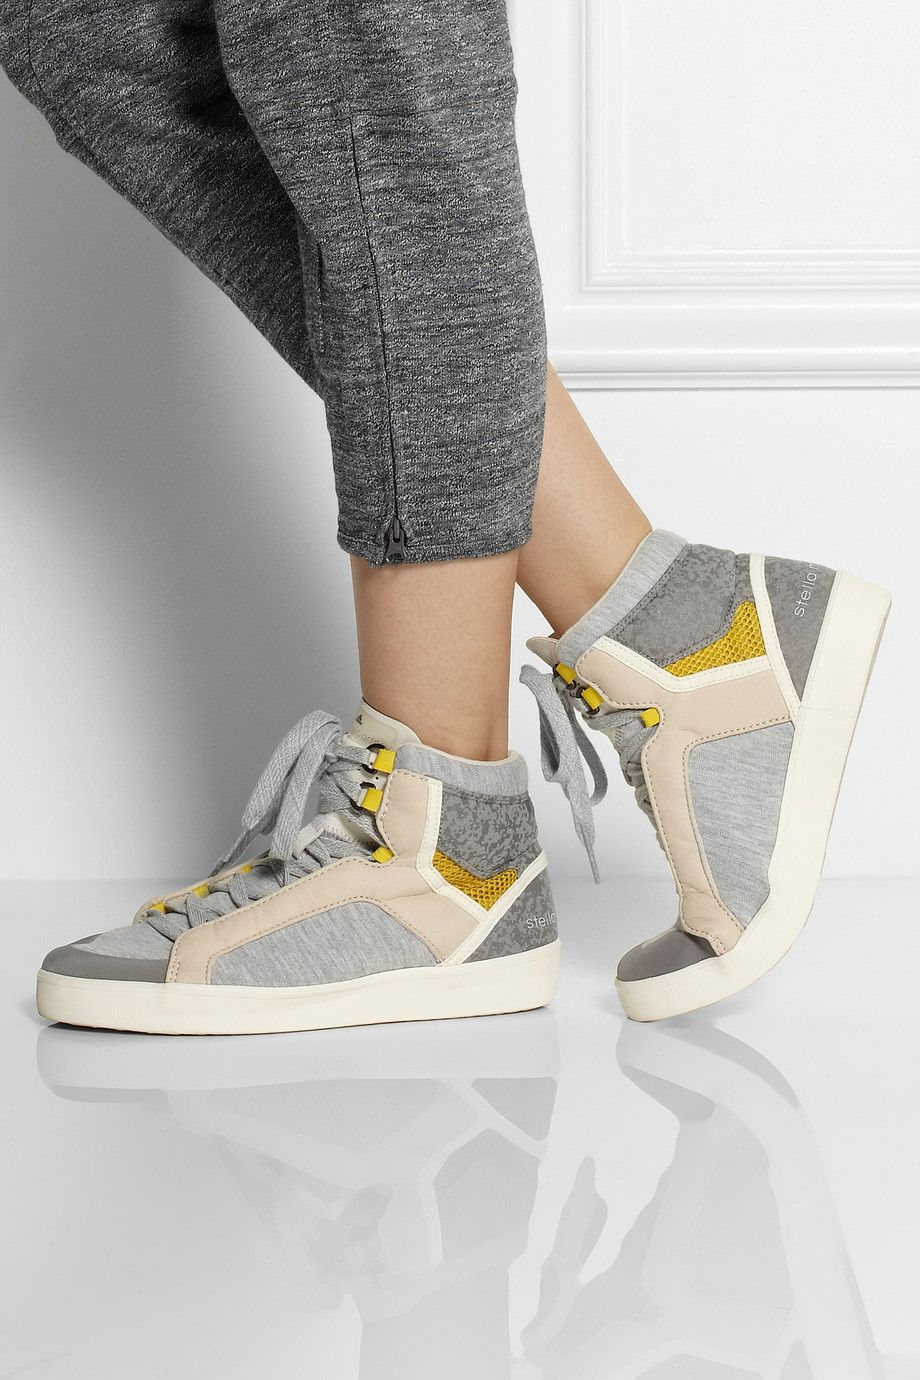 0f2740006e4 Adidas by Stella McCartney